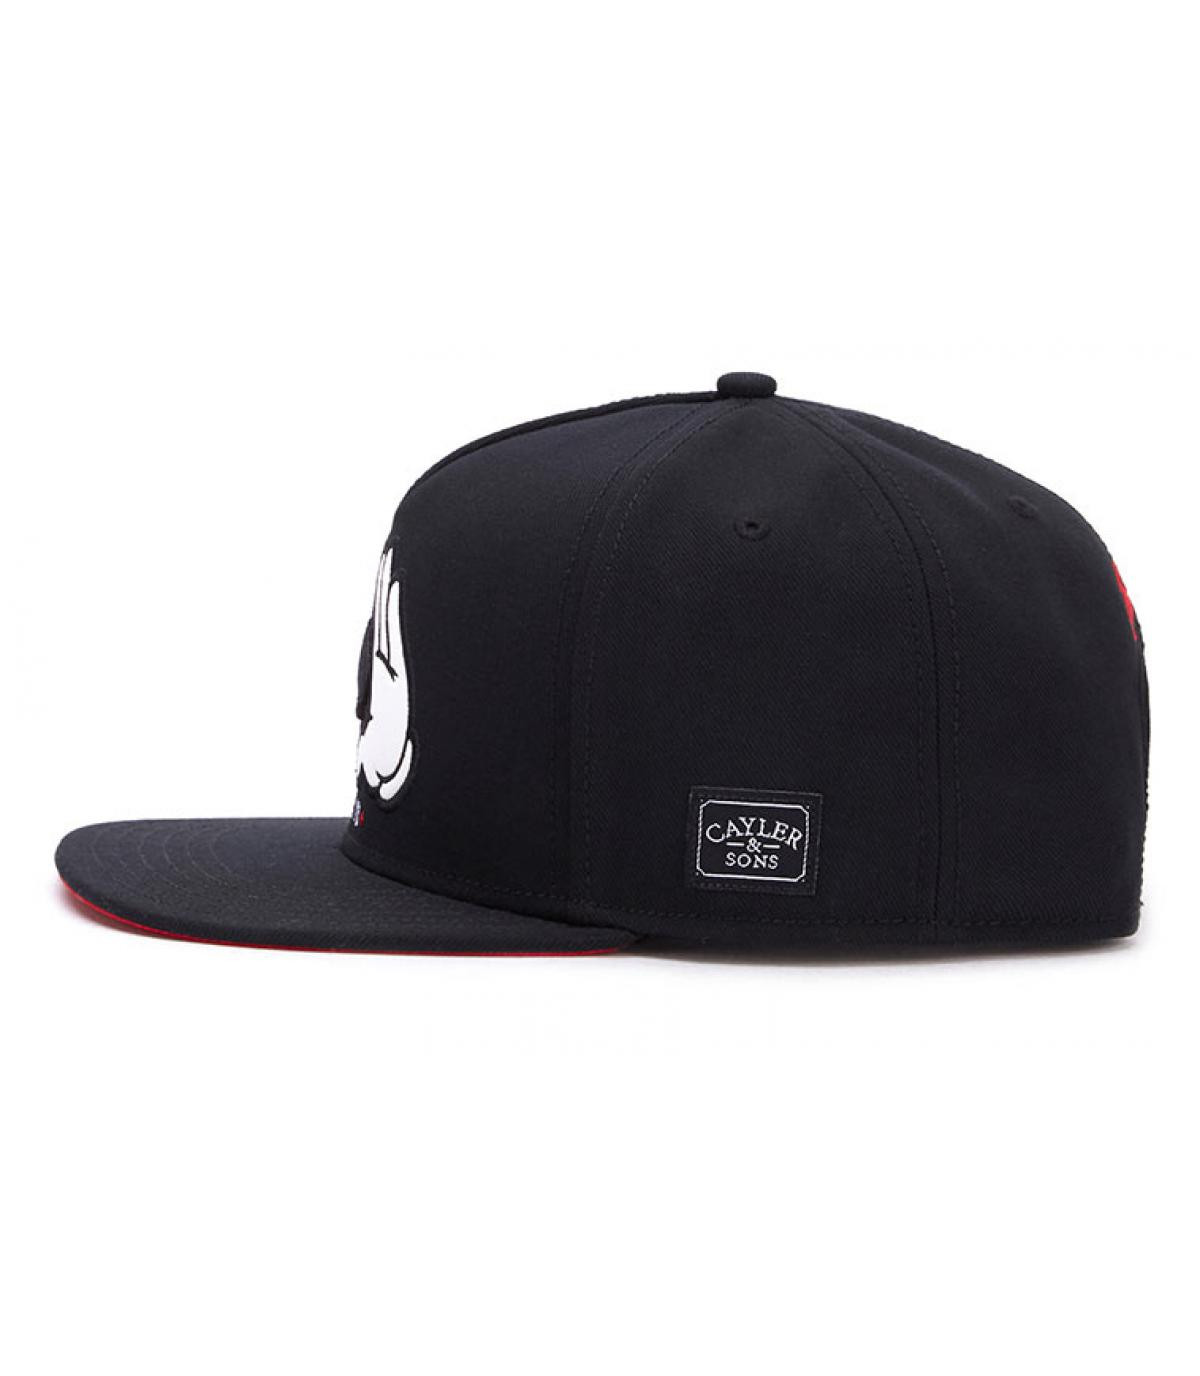 0927dfe64ab all in black Cayler snapback - All In Snapback black by Cayler and ...